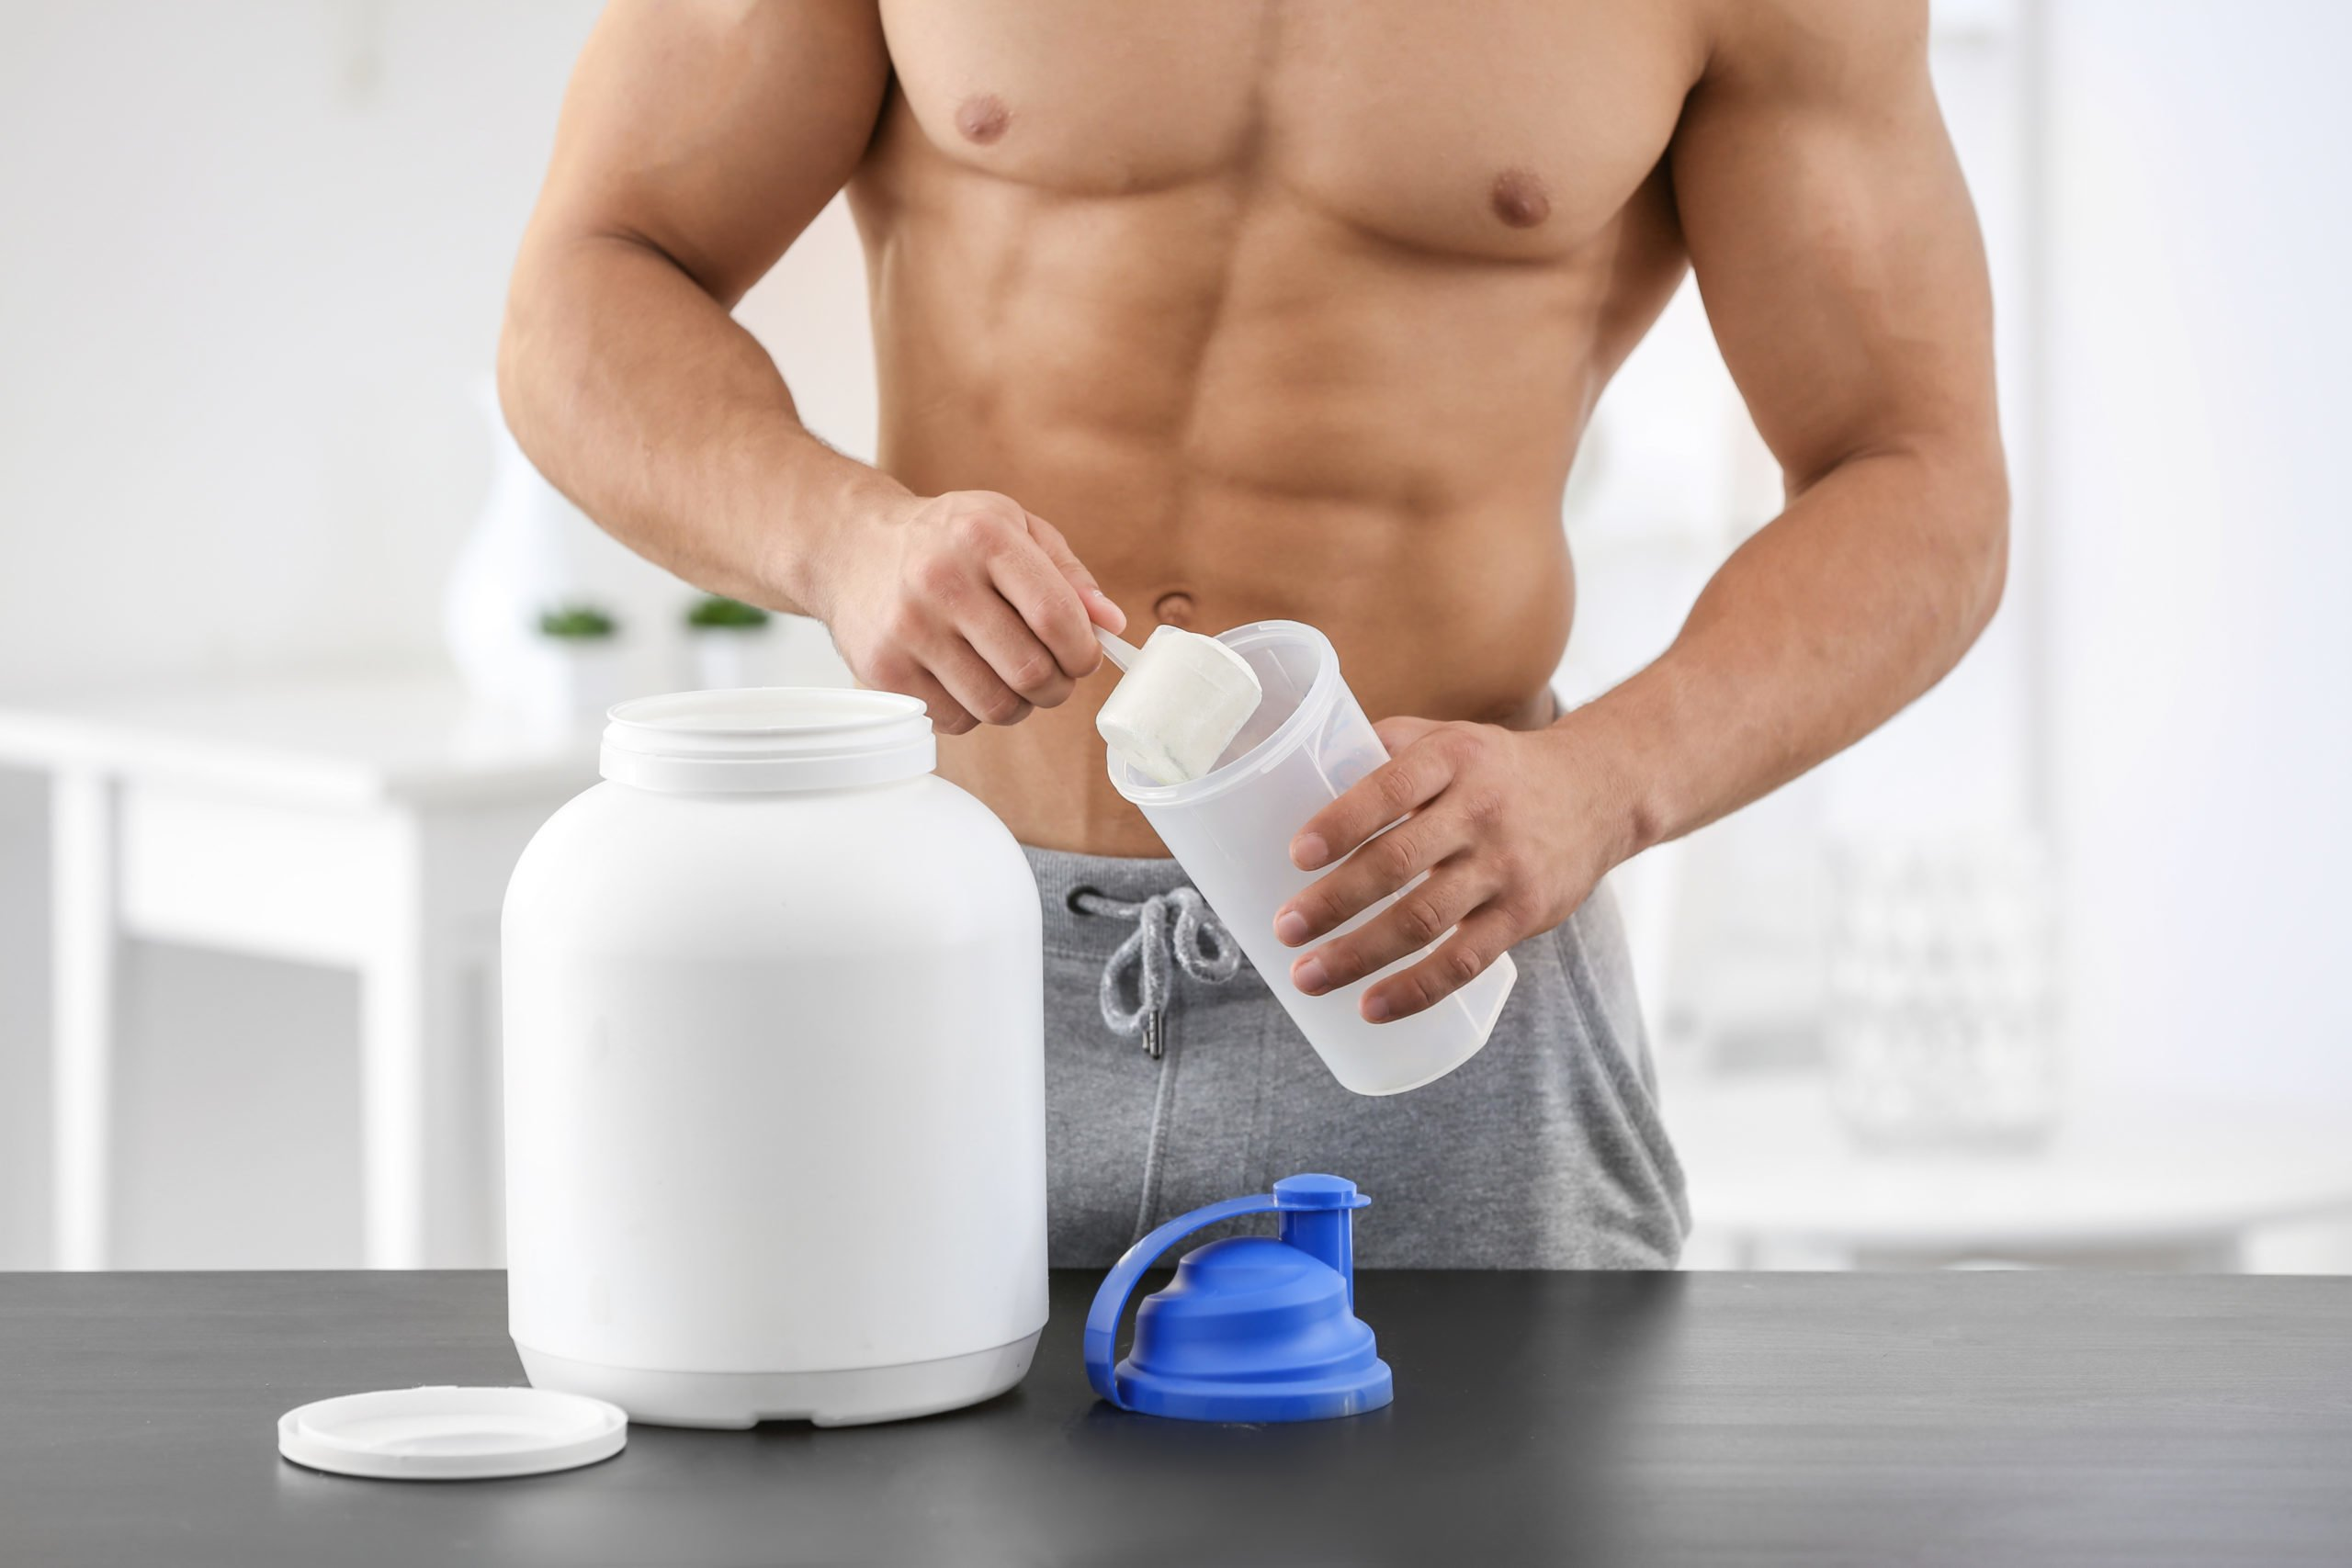 The 5 Best Natural Muscle Gainer Supplements